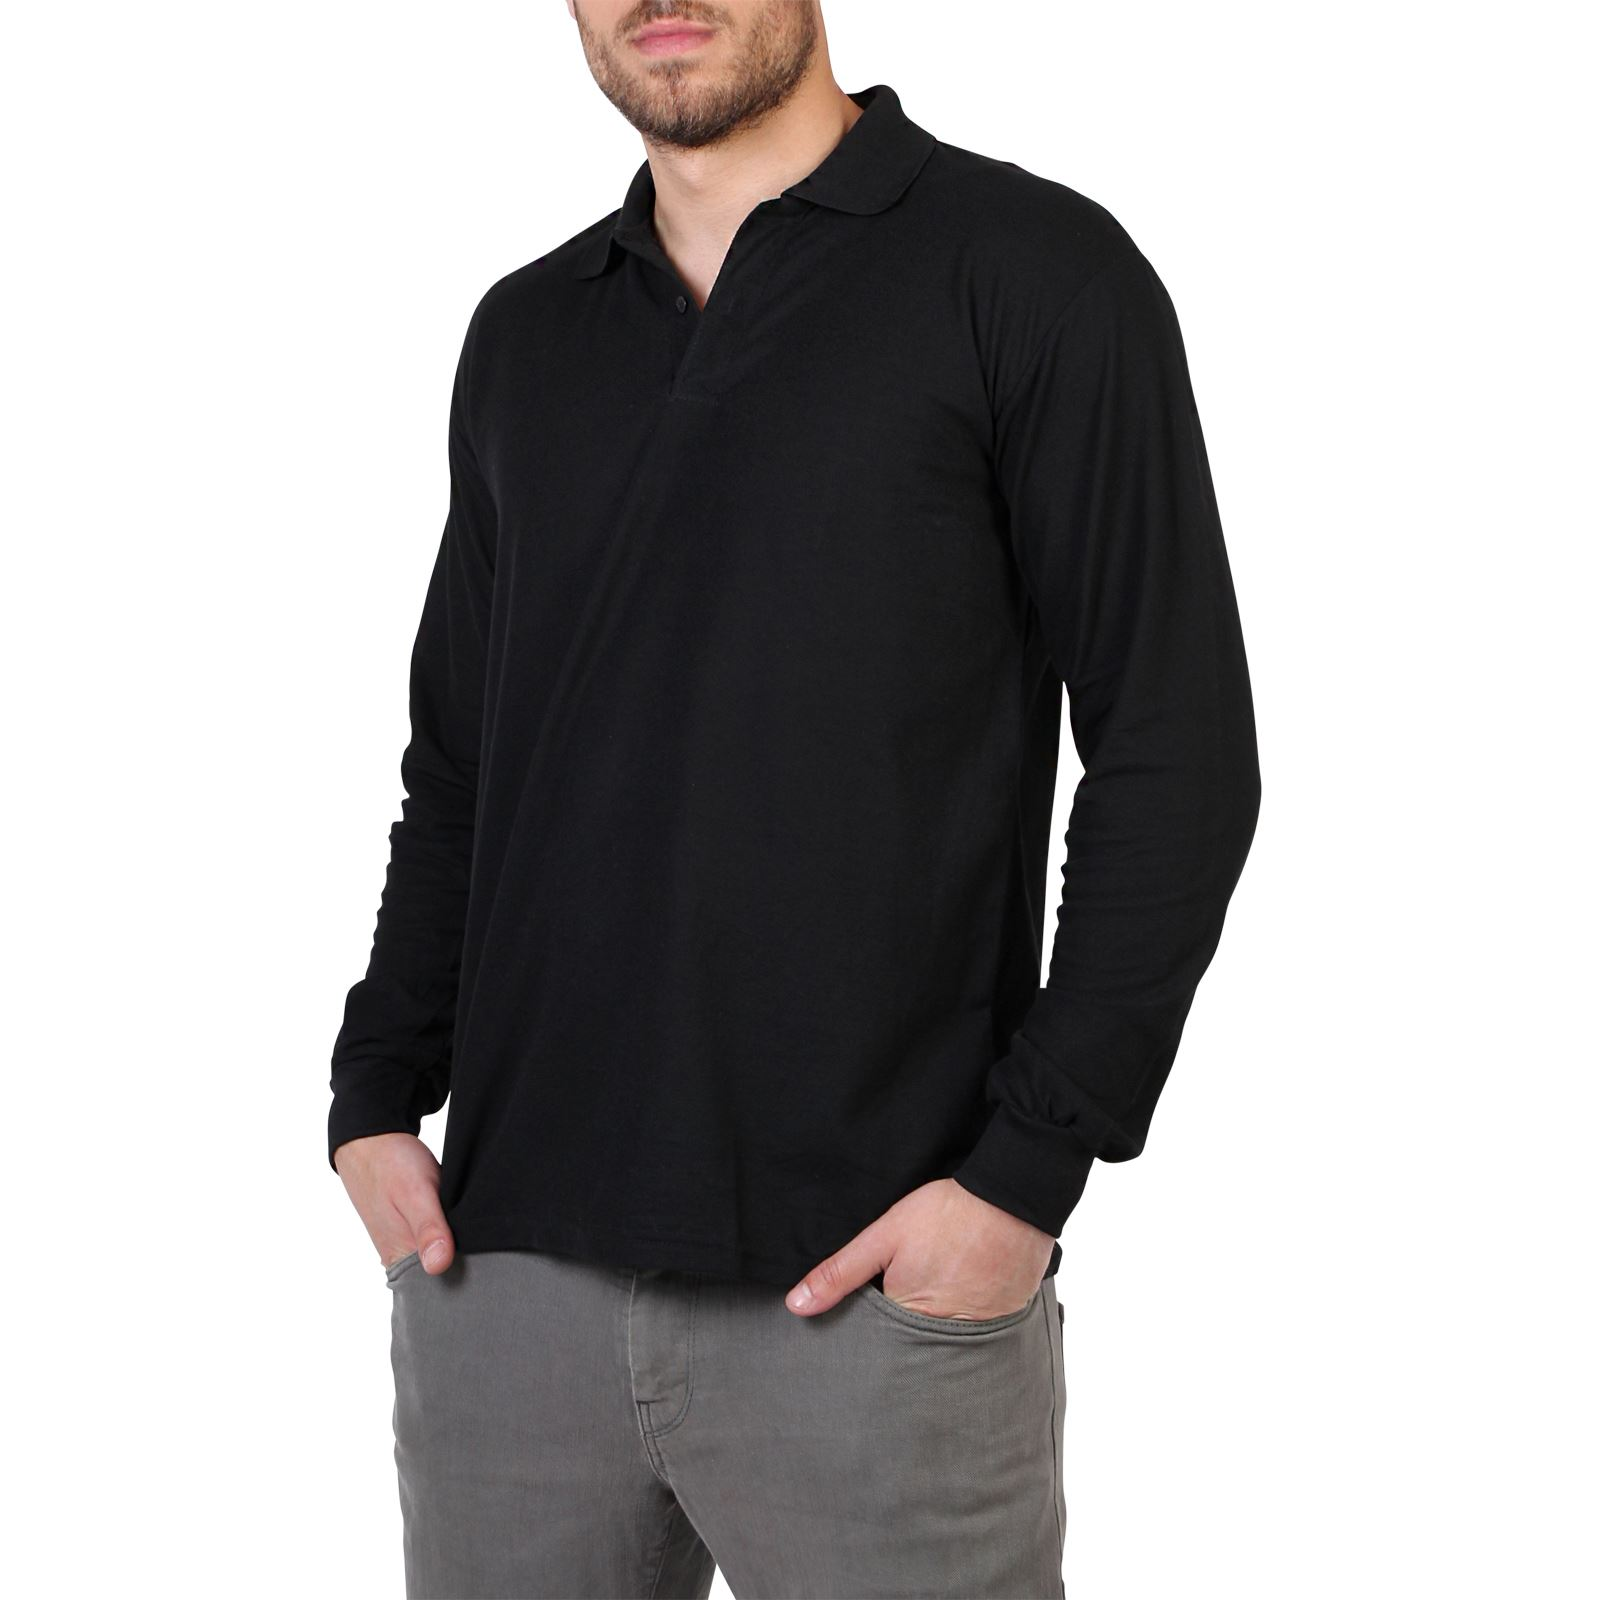 Mens casual long sleeve polo t shirt top plain regular for Xxl long sleeve t shirts